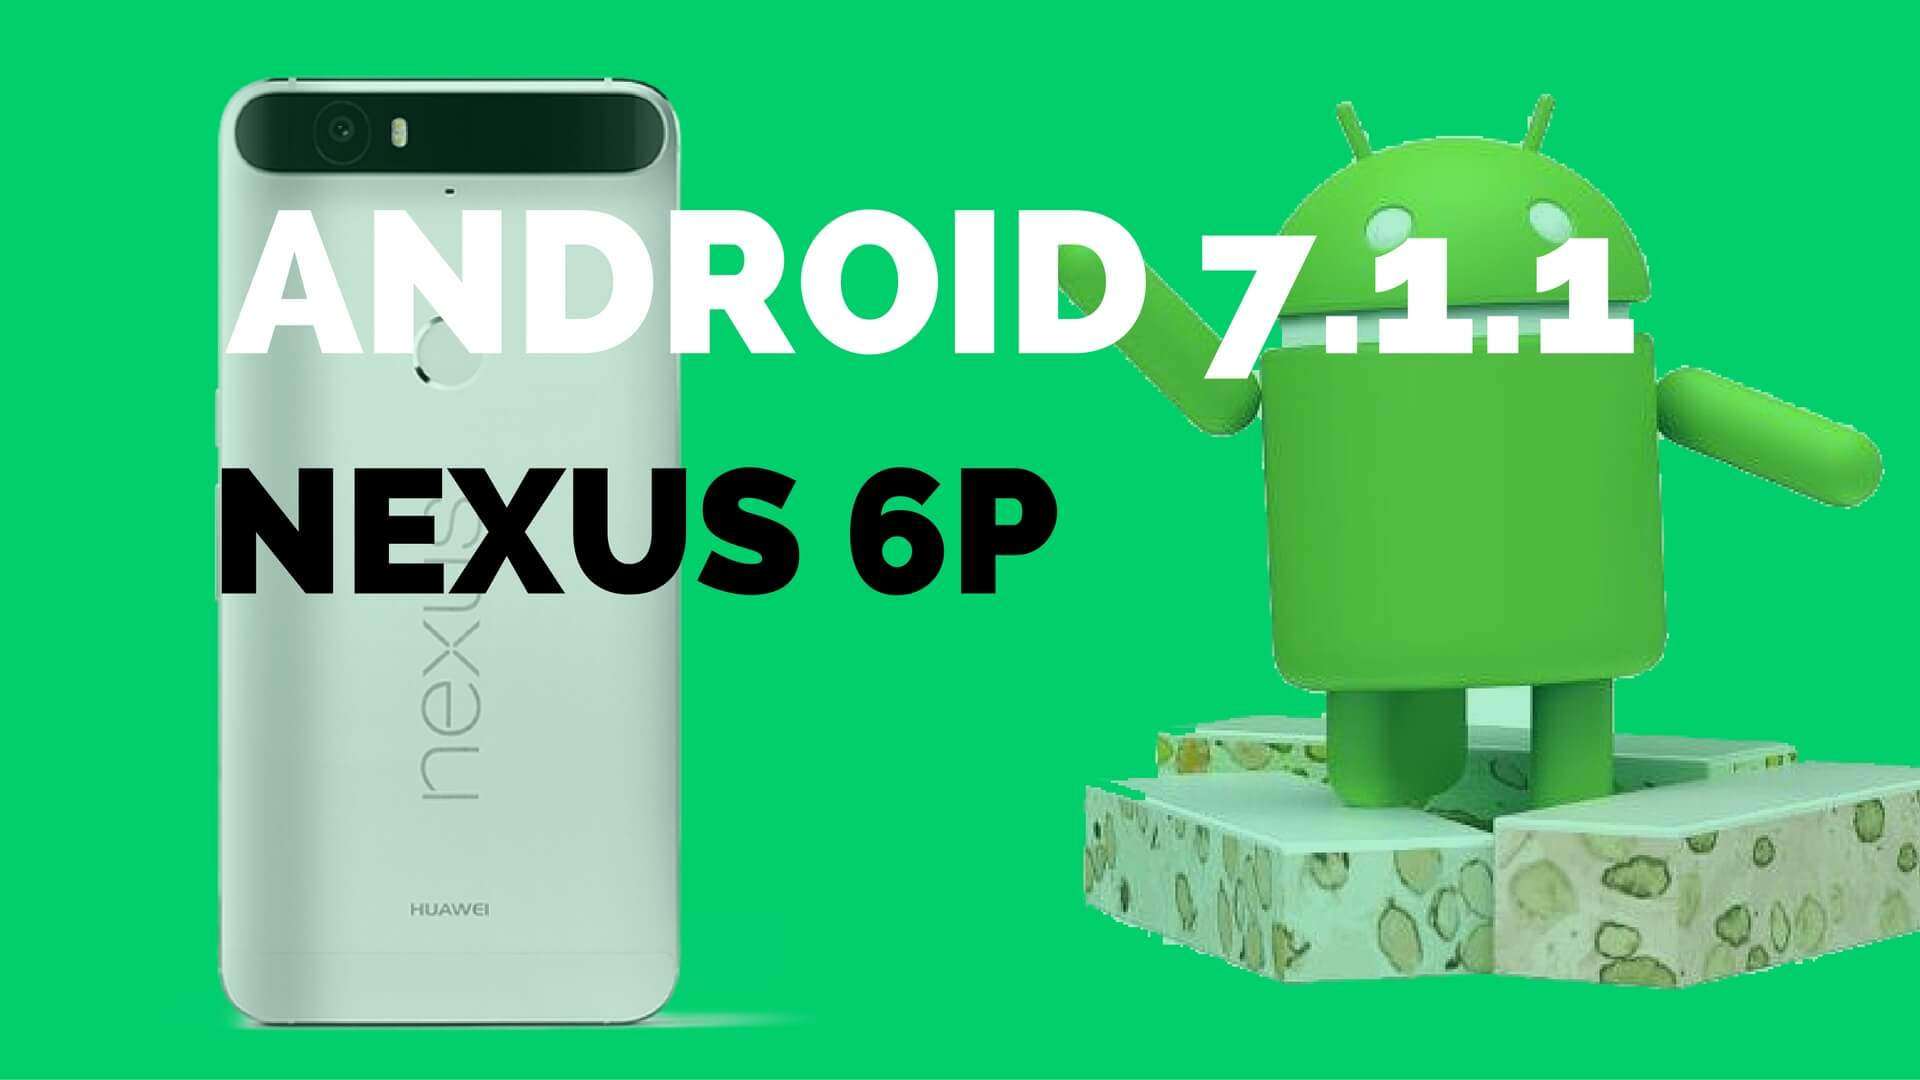 Nexus 6P: Android 7.1.1 ab Anfang Dezember